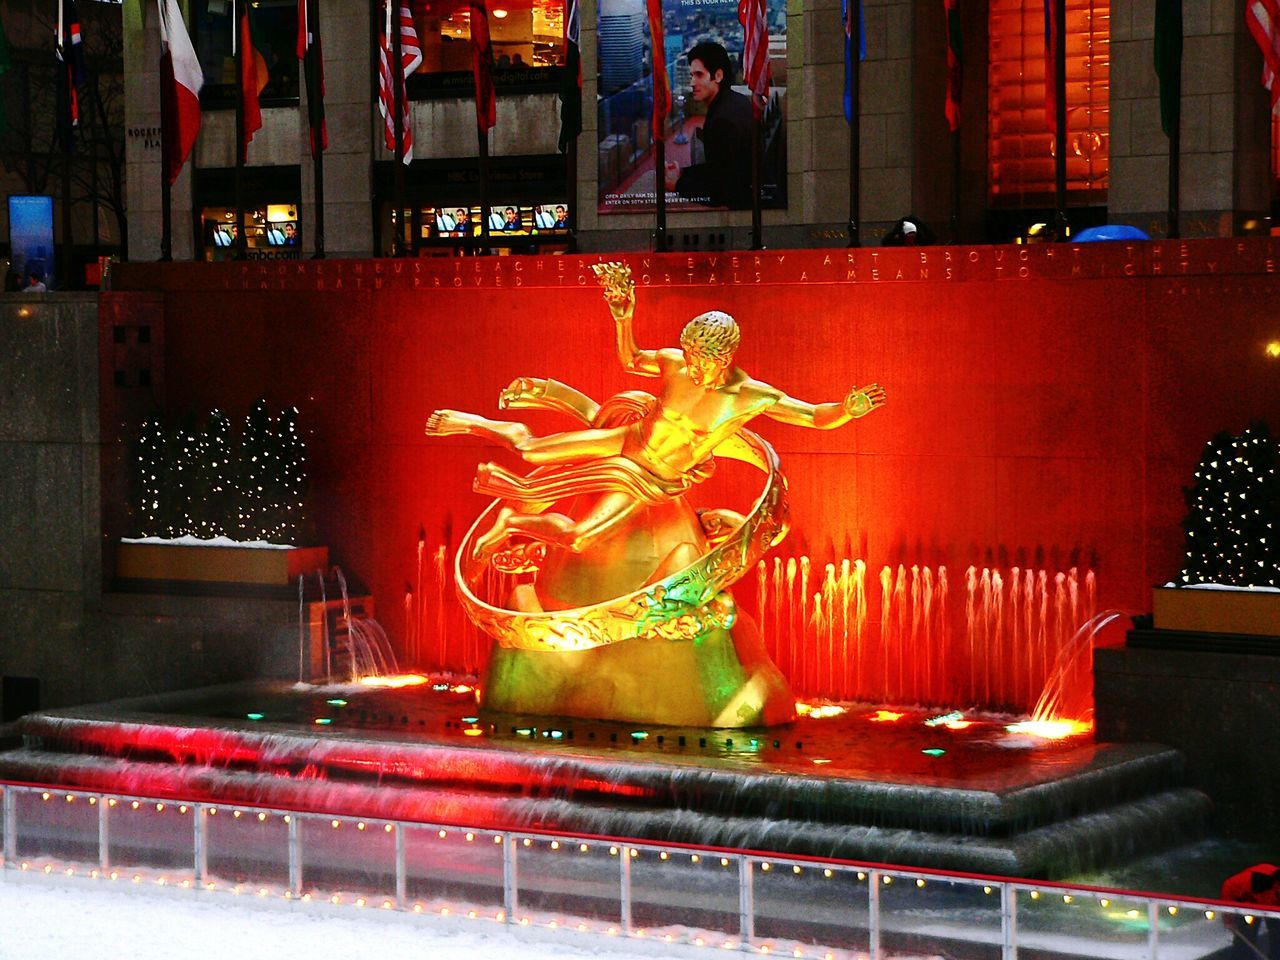 Cultures Travel Destinations Celebration Chinese New Year Illuminated No People Christmas Statue Holiday - Event Sculpture Architecture Night Annual Event Chinese Dragon